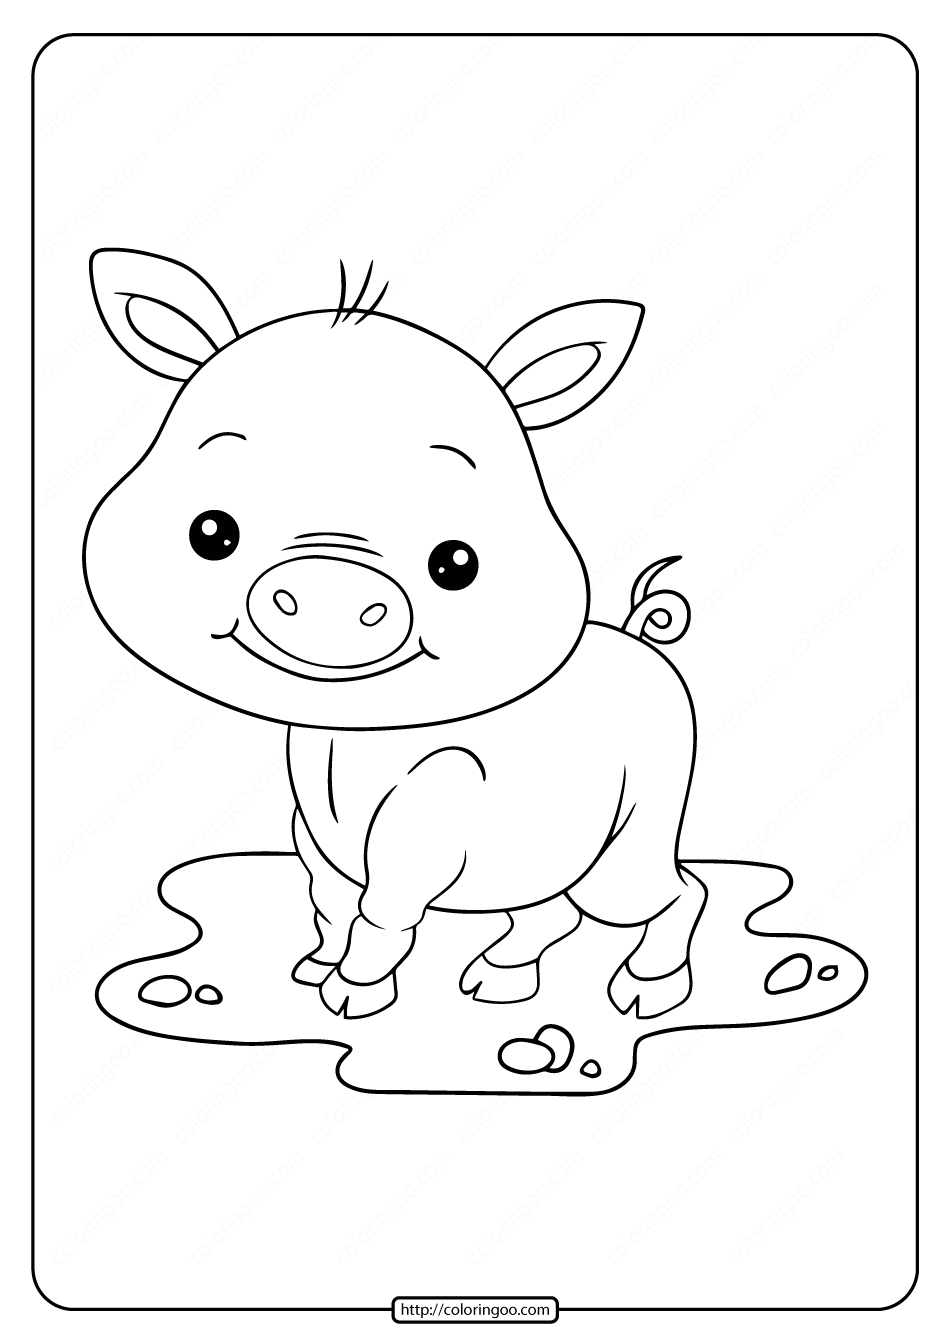 pig pictures to colour simple pig drawing at getdrawings free download pictures colour pig to